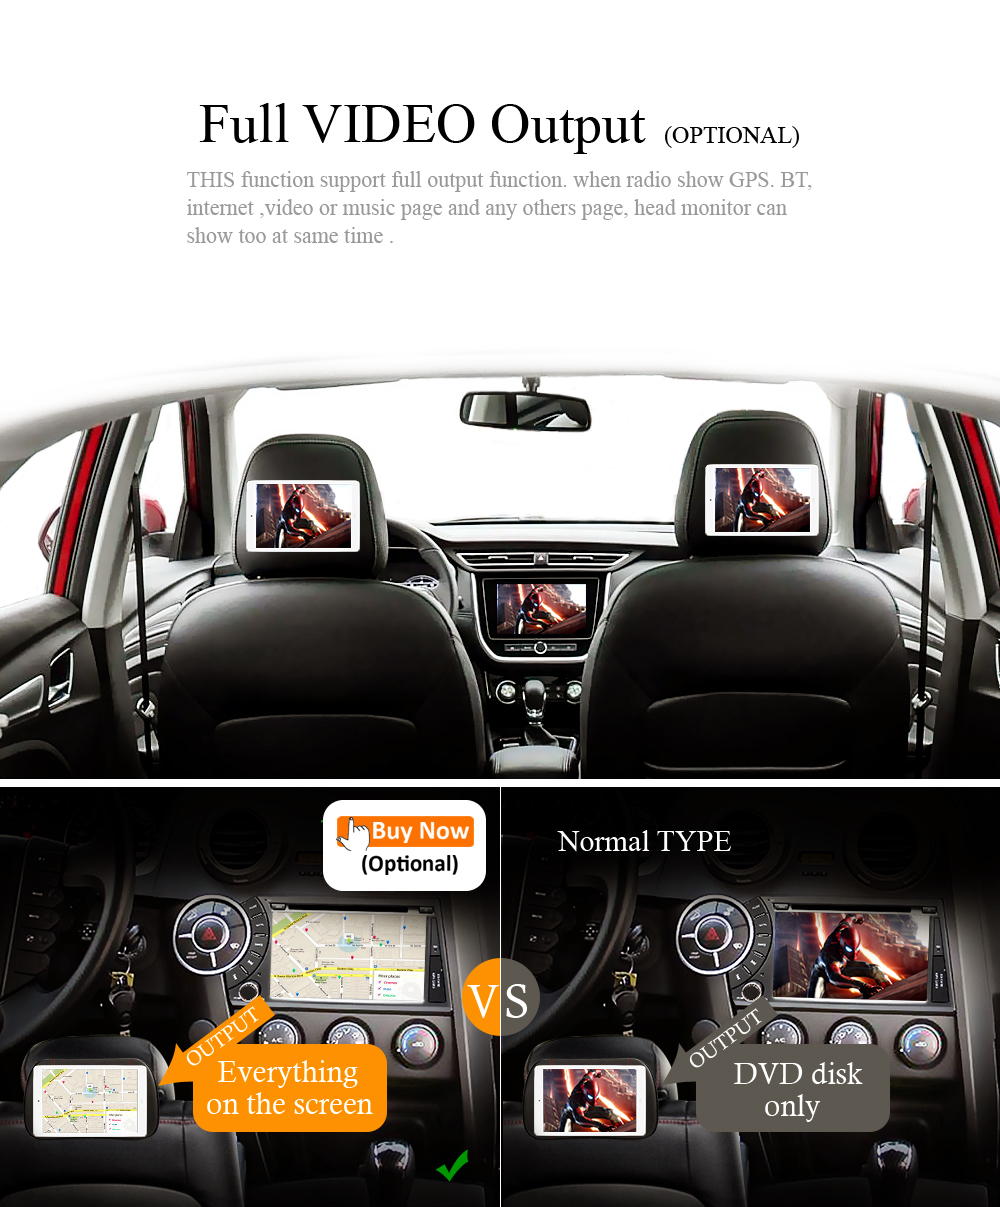 full AV output function with RCA port support rear head monitor function